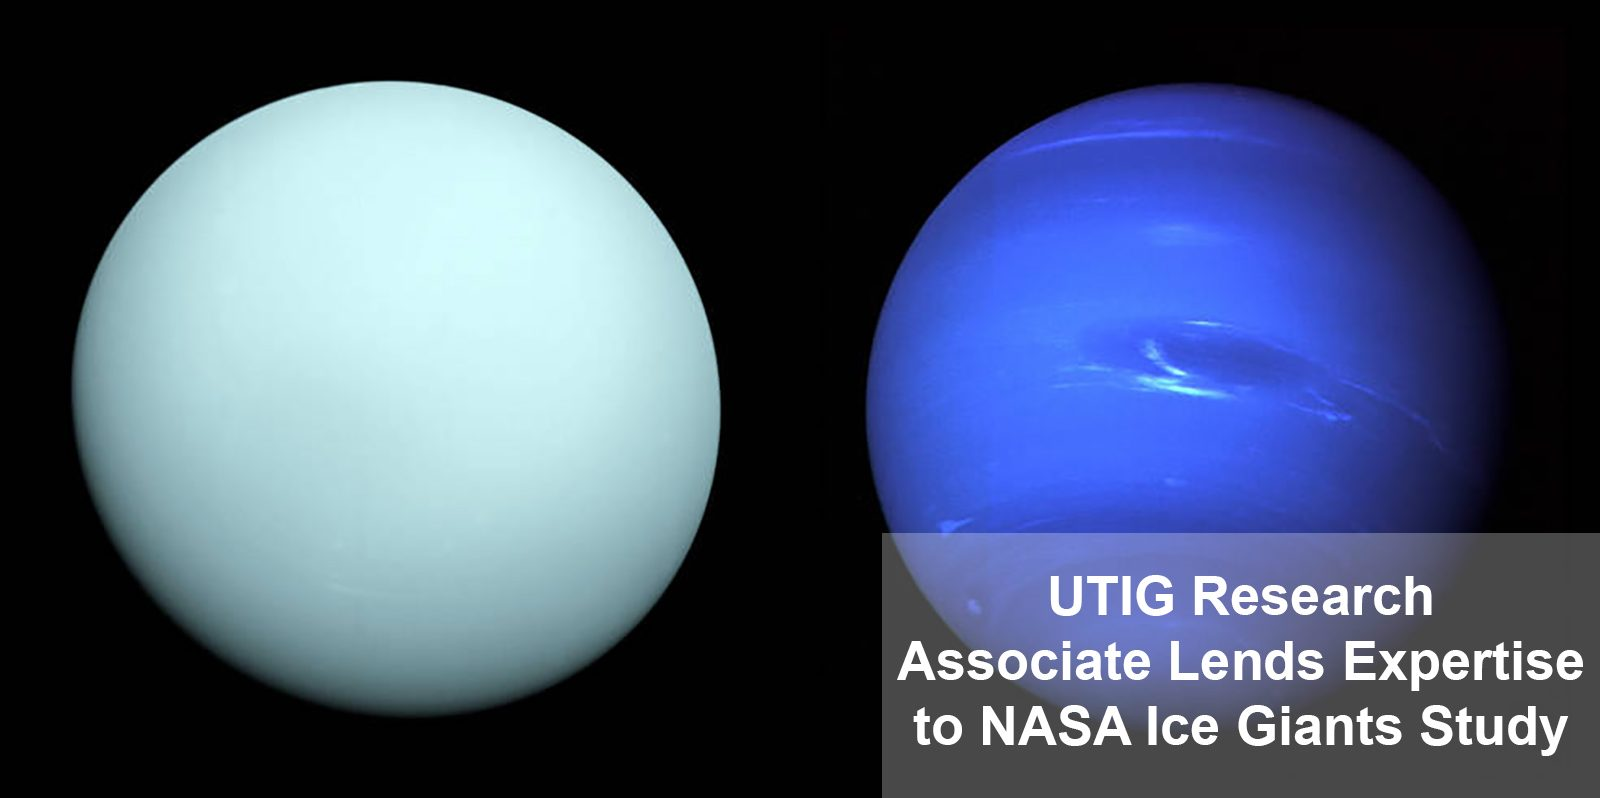 UTIG Research Associate Lends Expertise to NASA Ice Giants Study